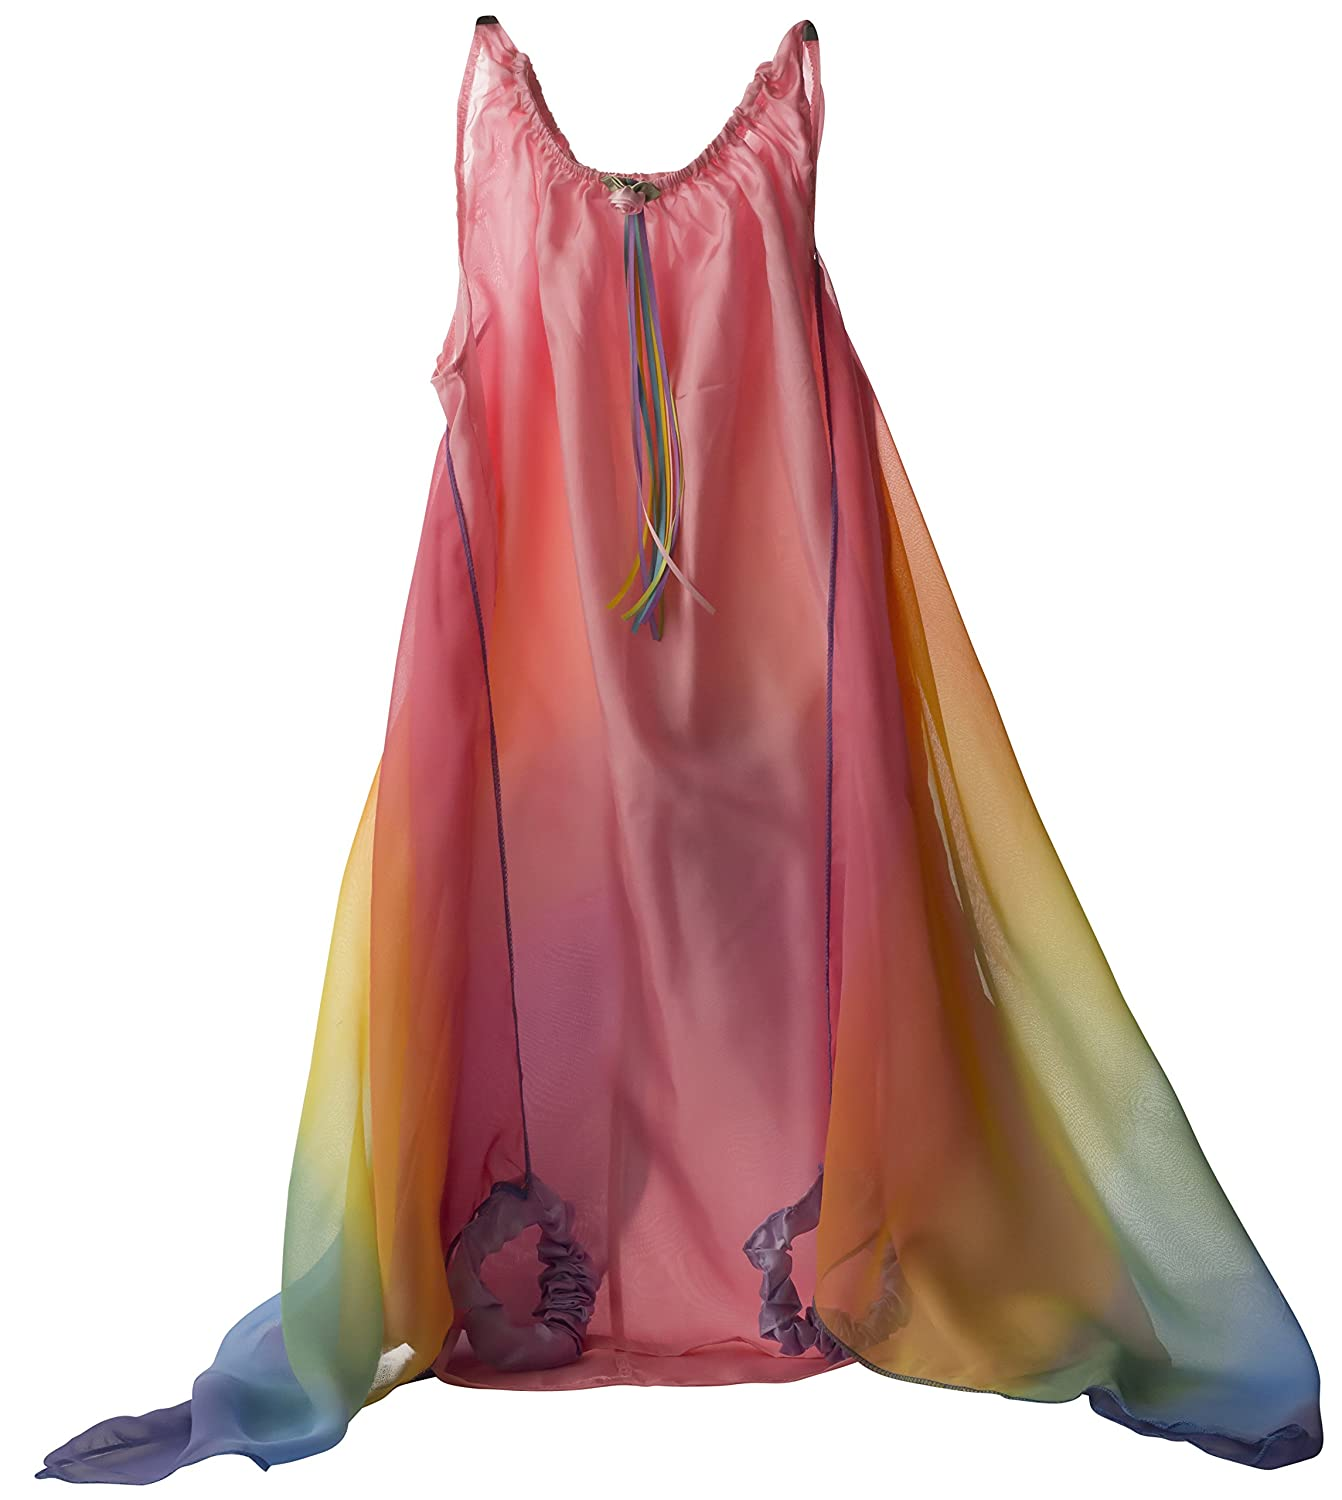 43cb524617fc8 Amazon.com  Sarah s Silks Fairy Dress in Pink with Rainbow Wings  Toys    Games